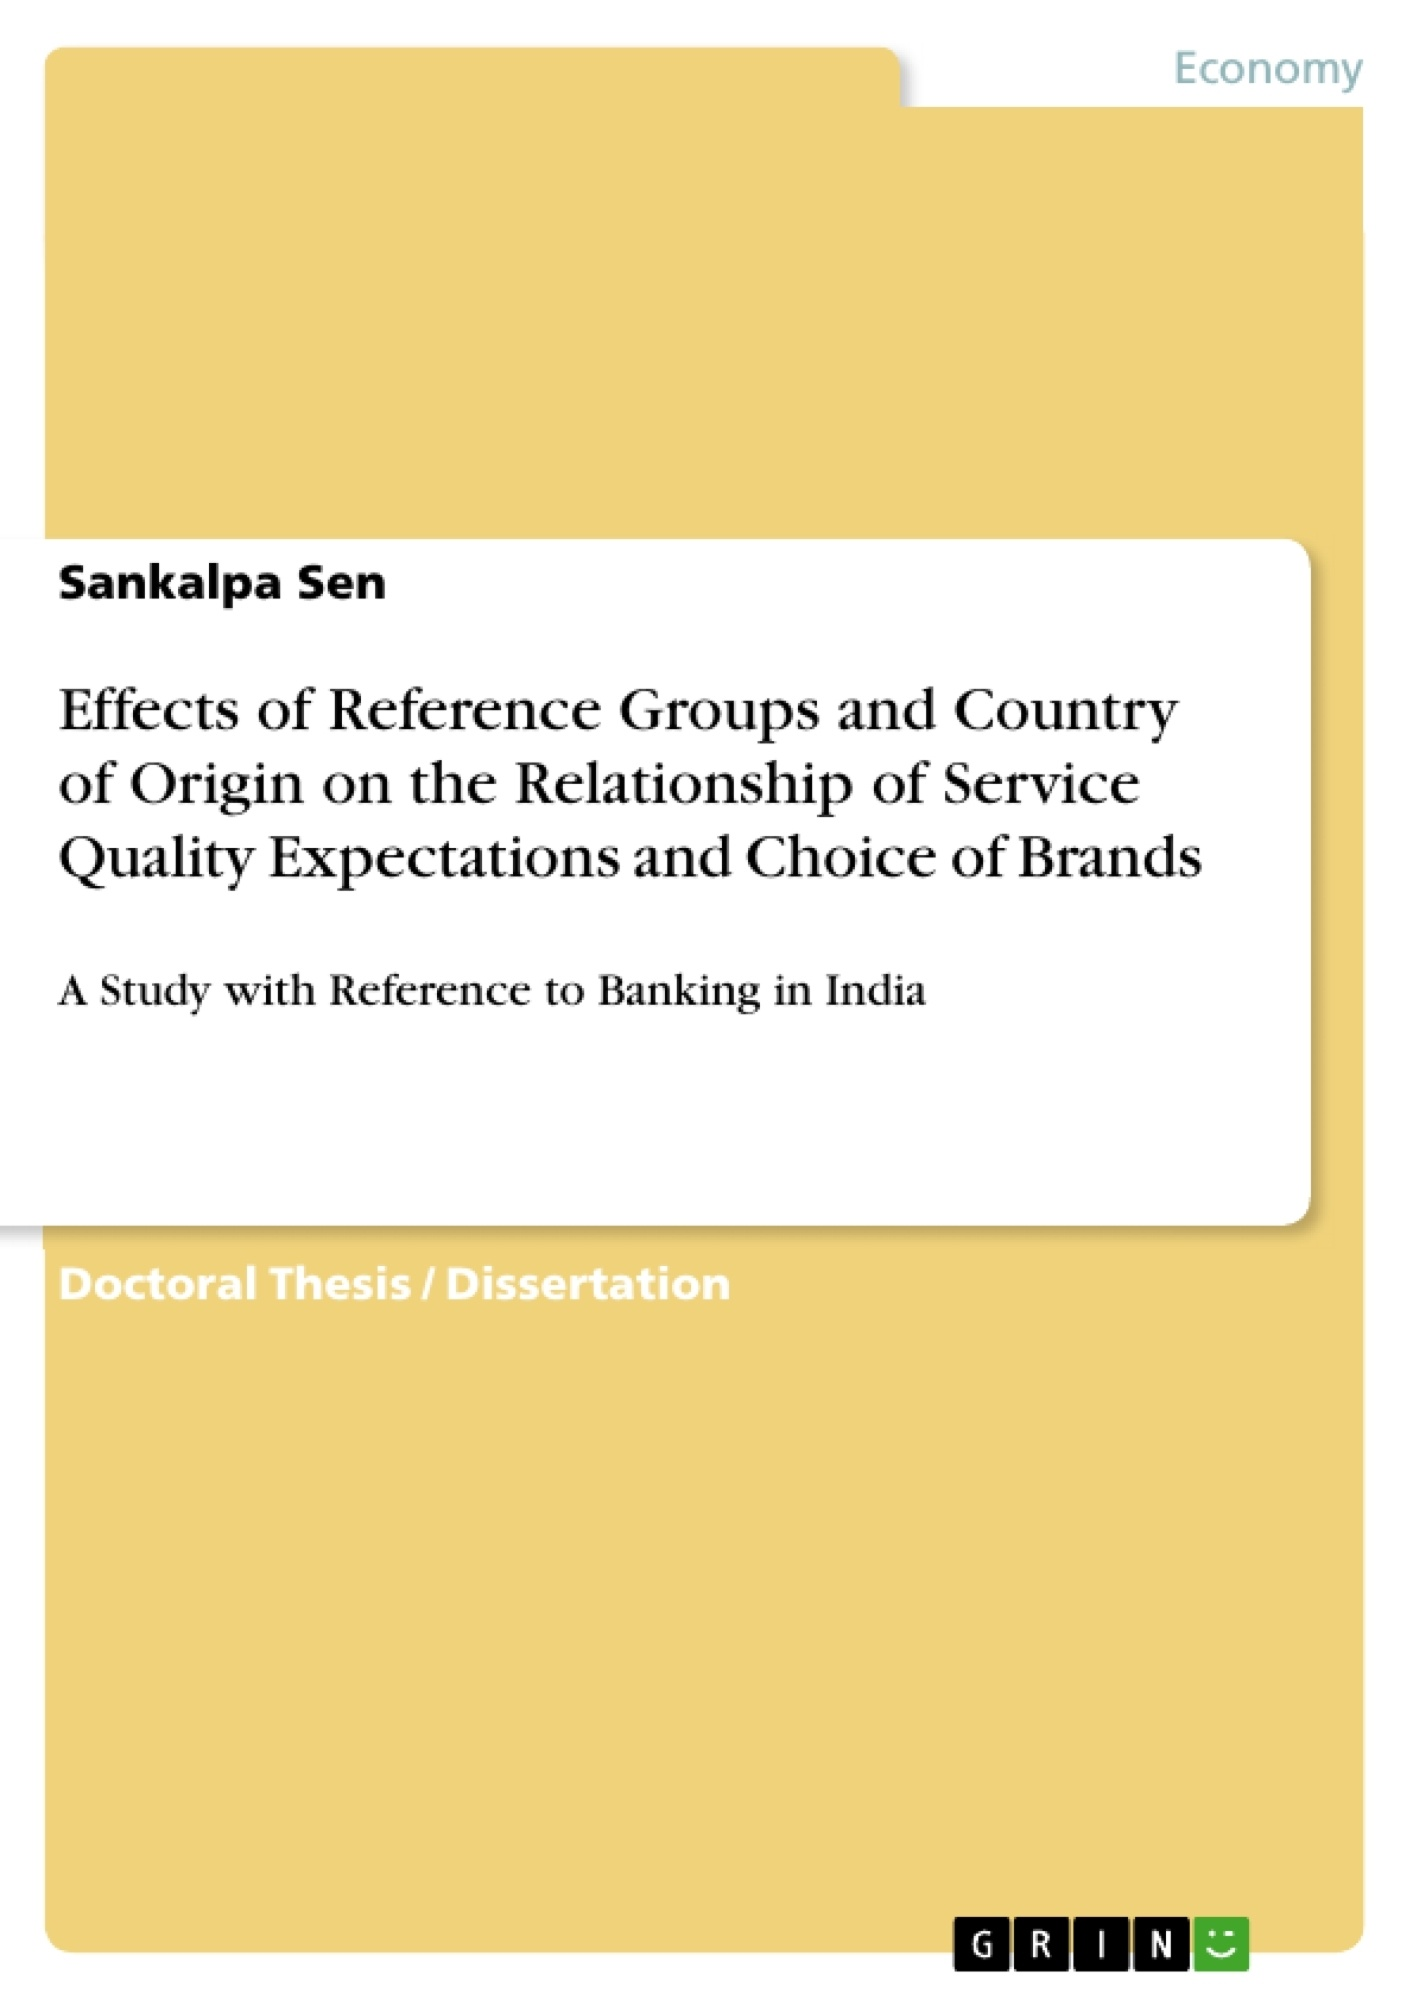 Title: Effects of Reference Groups and Country of Origin on the Relationship of Service Quality Expectations and Choice of Brands